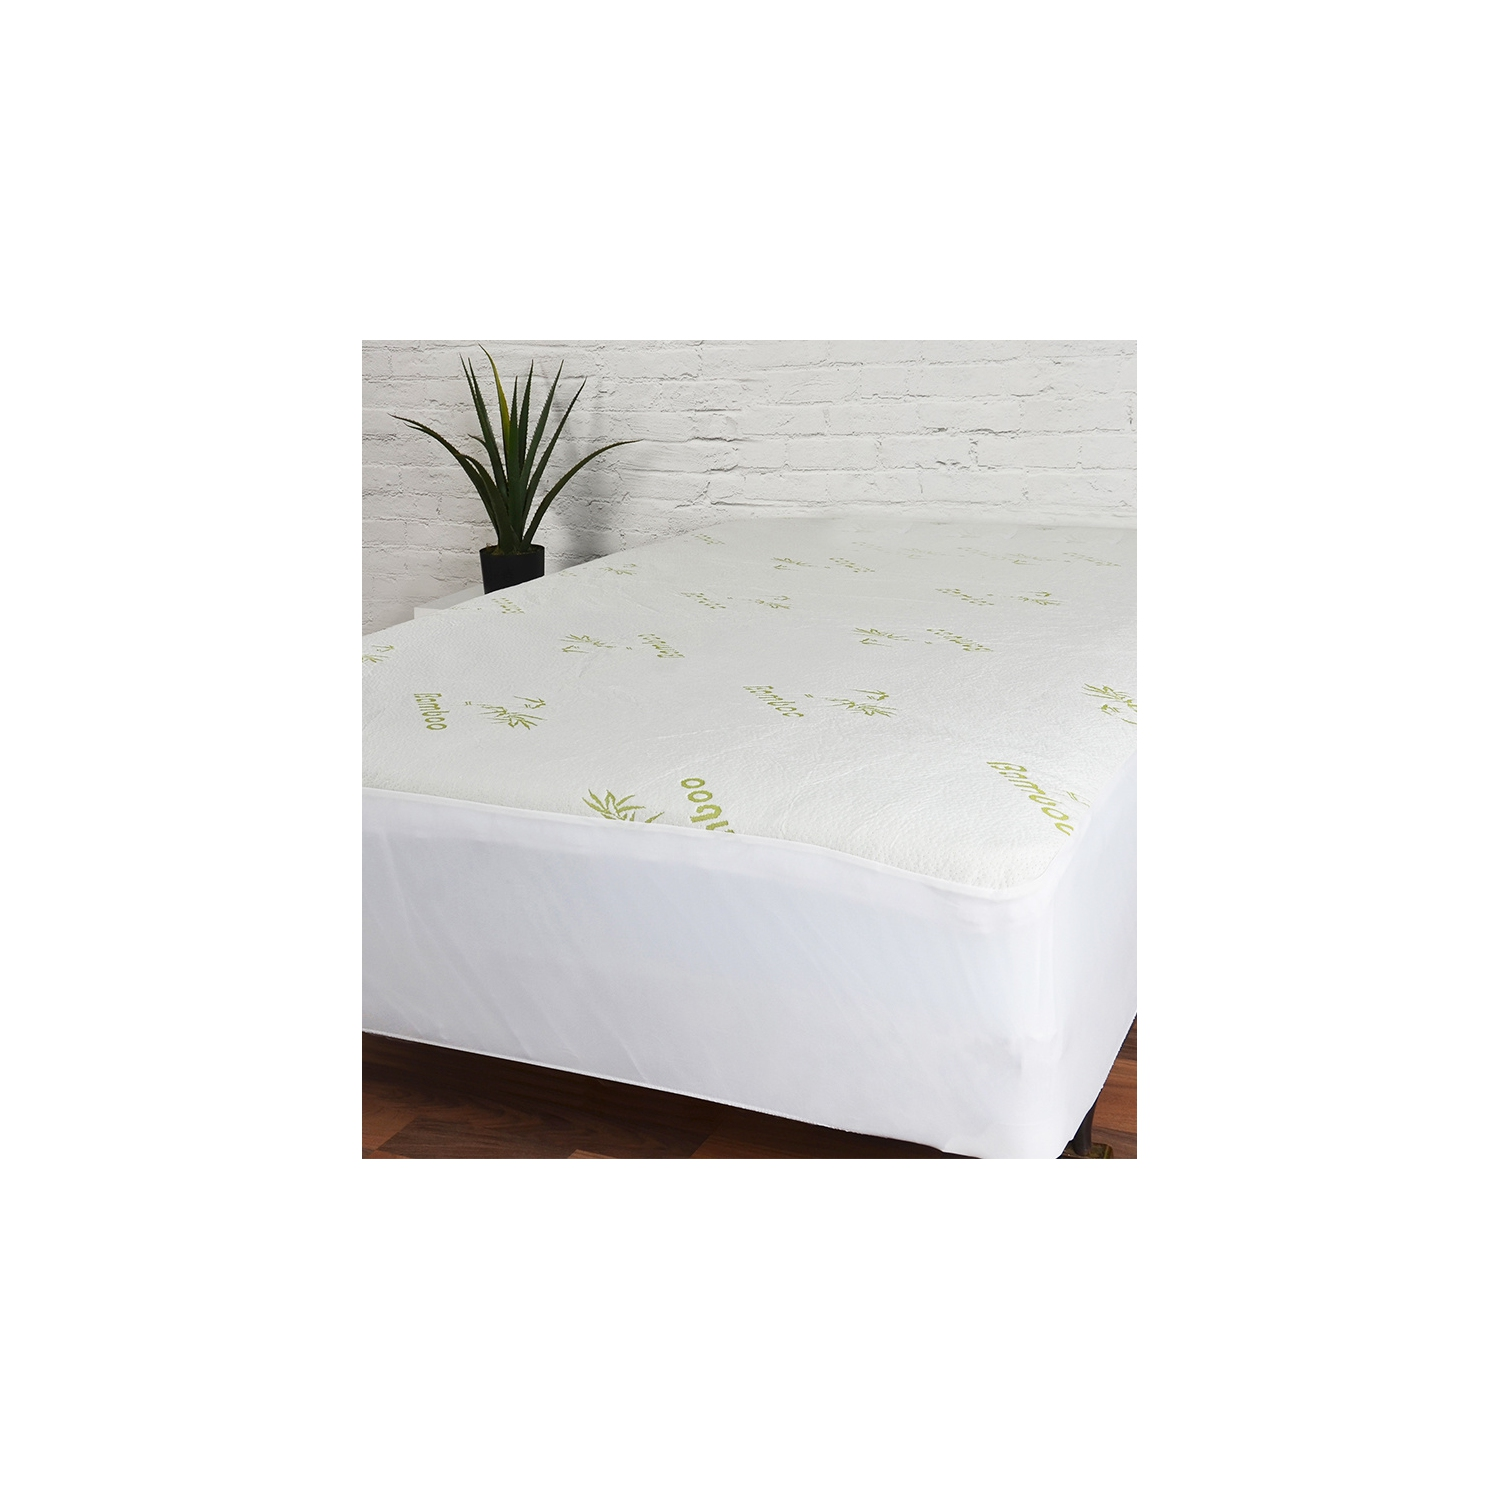 waterproof quilted soulbedroom new posture home protector mattress covers textile